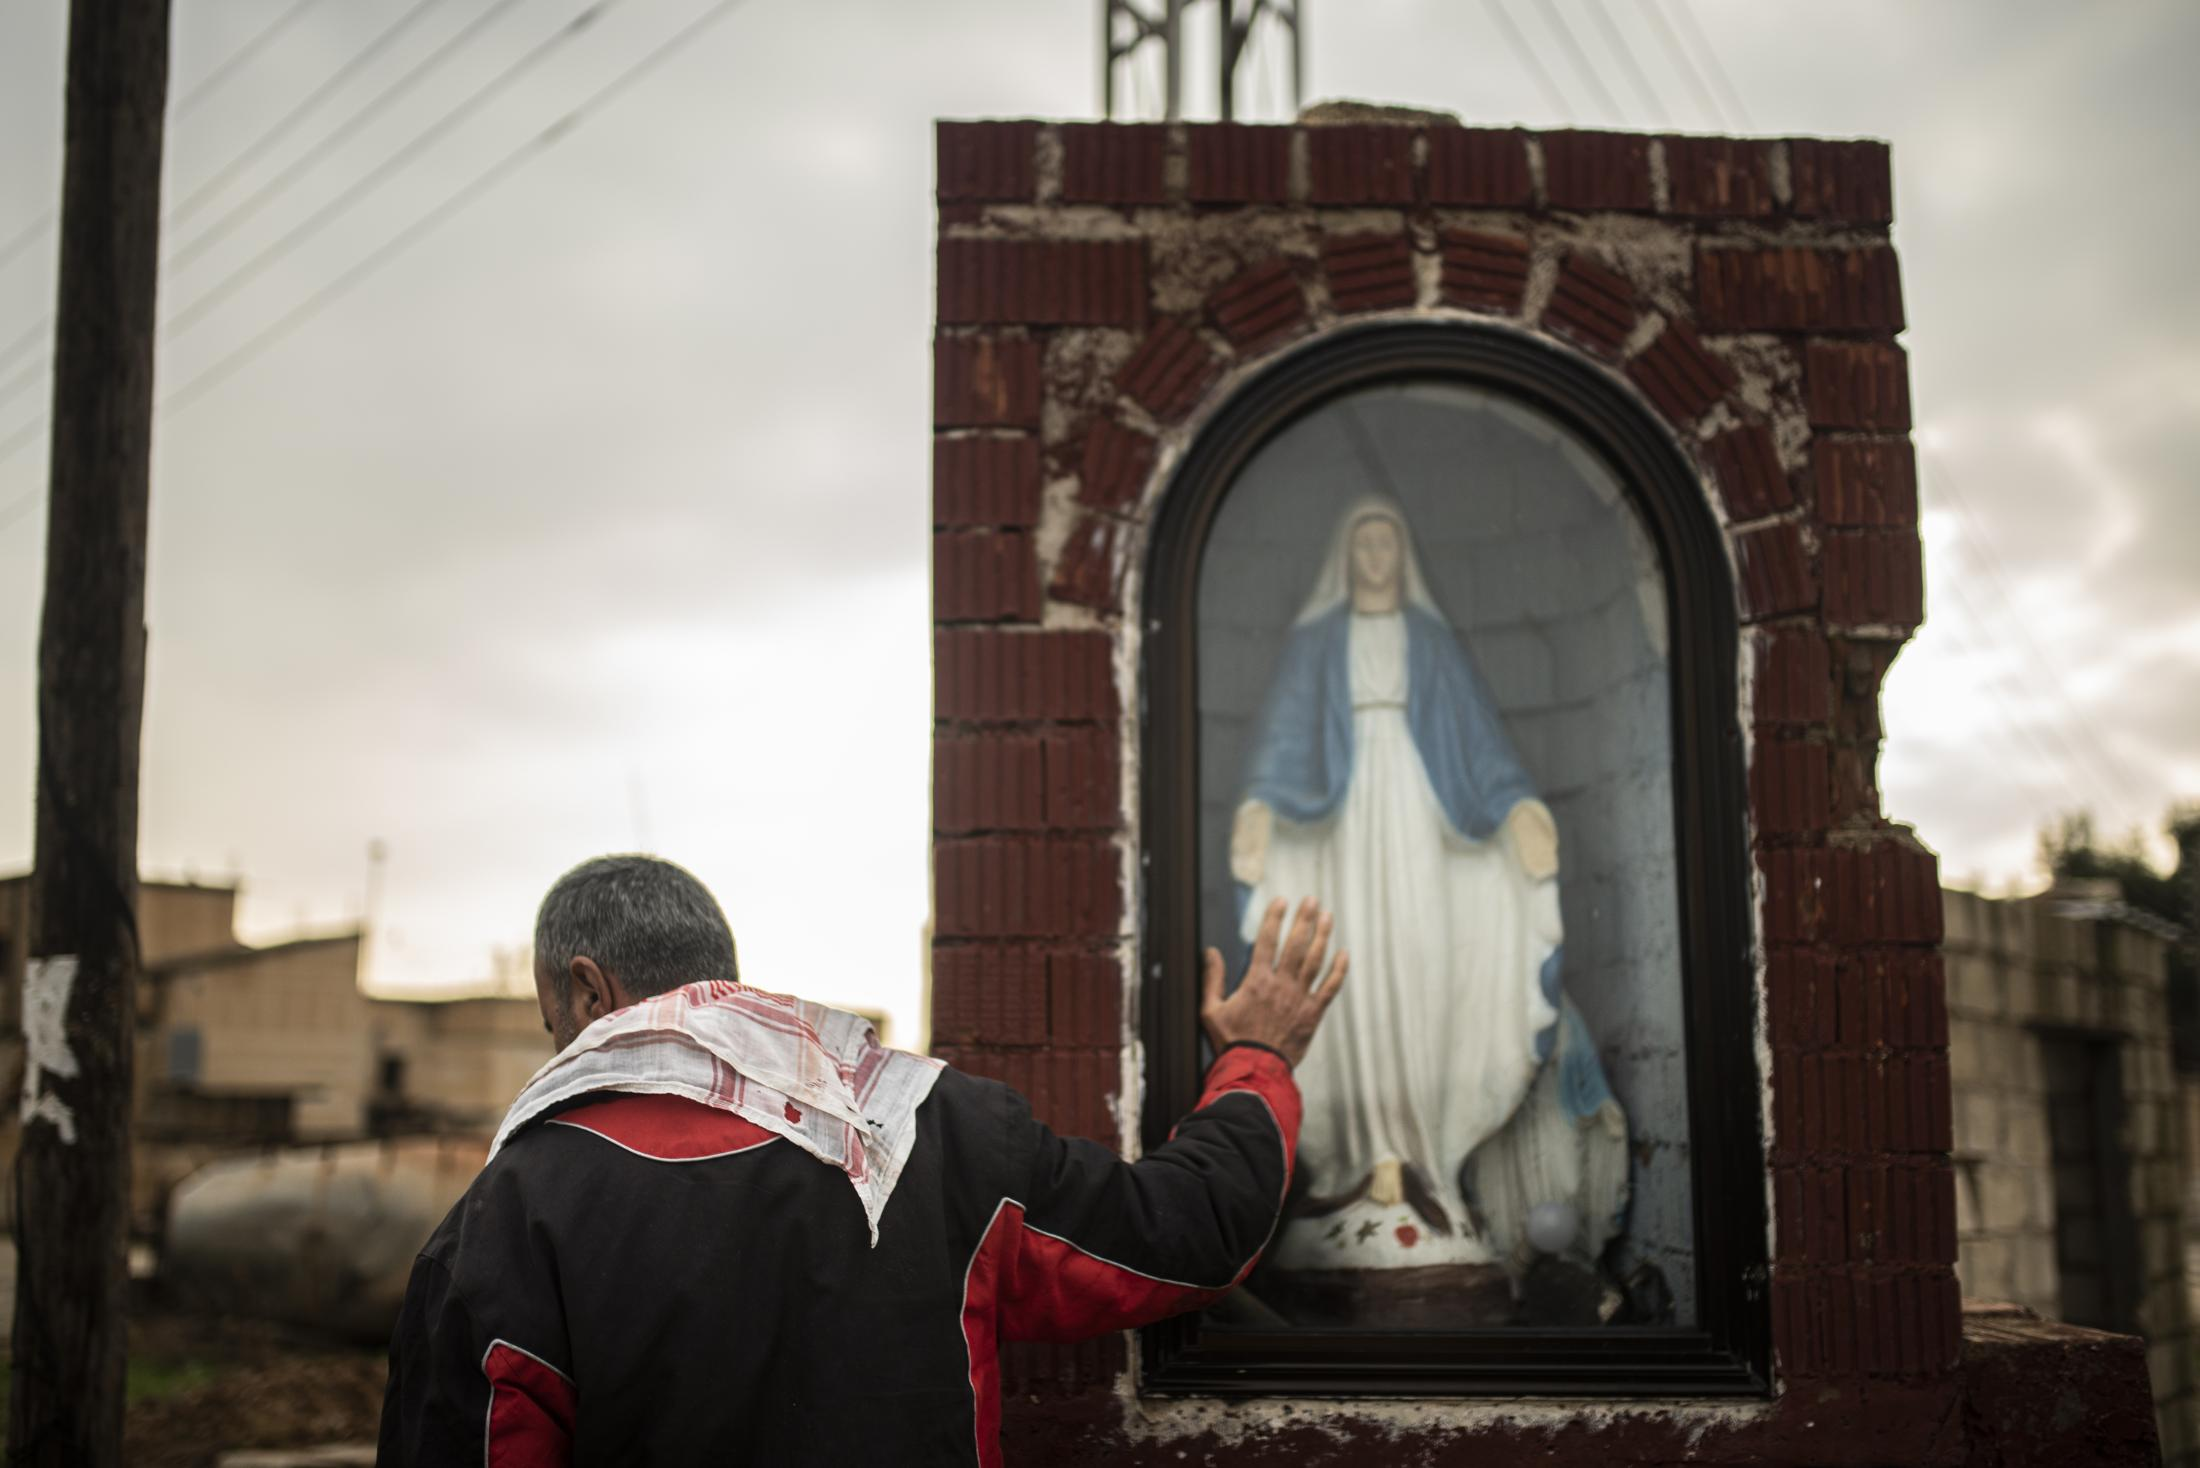 A christian inhabitant of Tel Nasri touching the figure of Mother Mary in the entry of the town few kilometers far away from the frontline against yihadists and Turkish Army. After the withdrawal of US troops from northern Syria in October 2019, Turkey launched an offensive against the predominantly Kurdish areas in the northeast of the country along Islamist forces. Calls for war crimes investigations into the conduct of Ankara-backed militias are mounting ever since. (Andoni Lubaki / Euskal Fondoa)